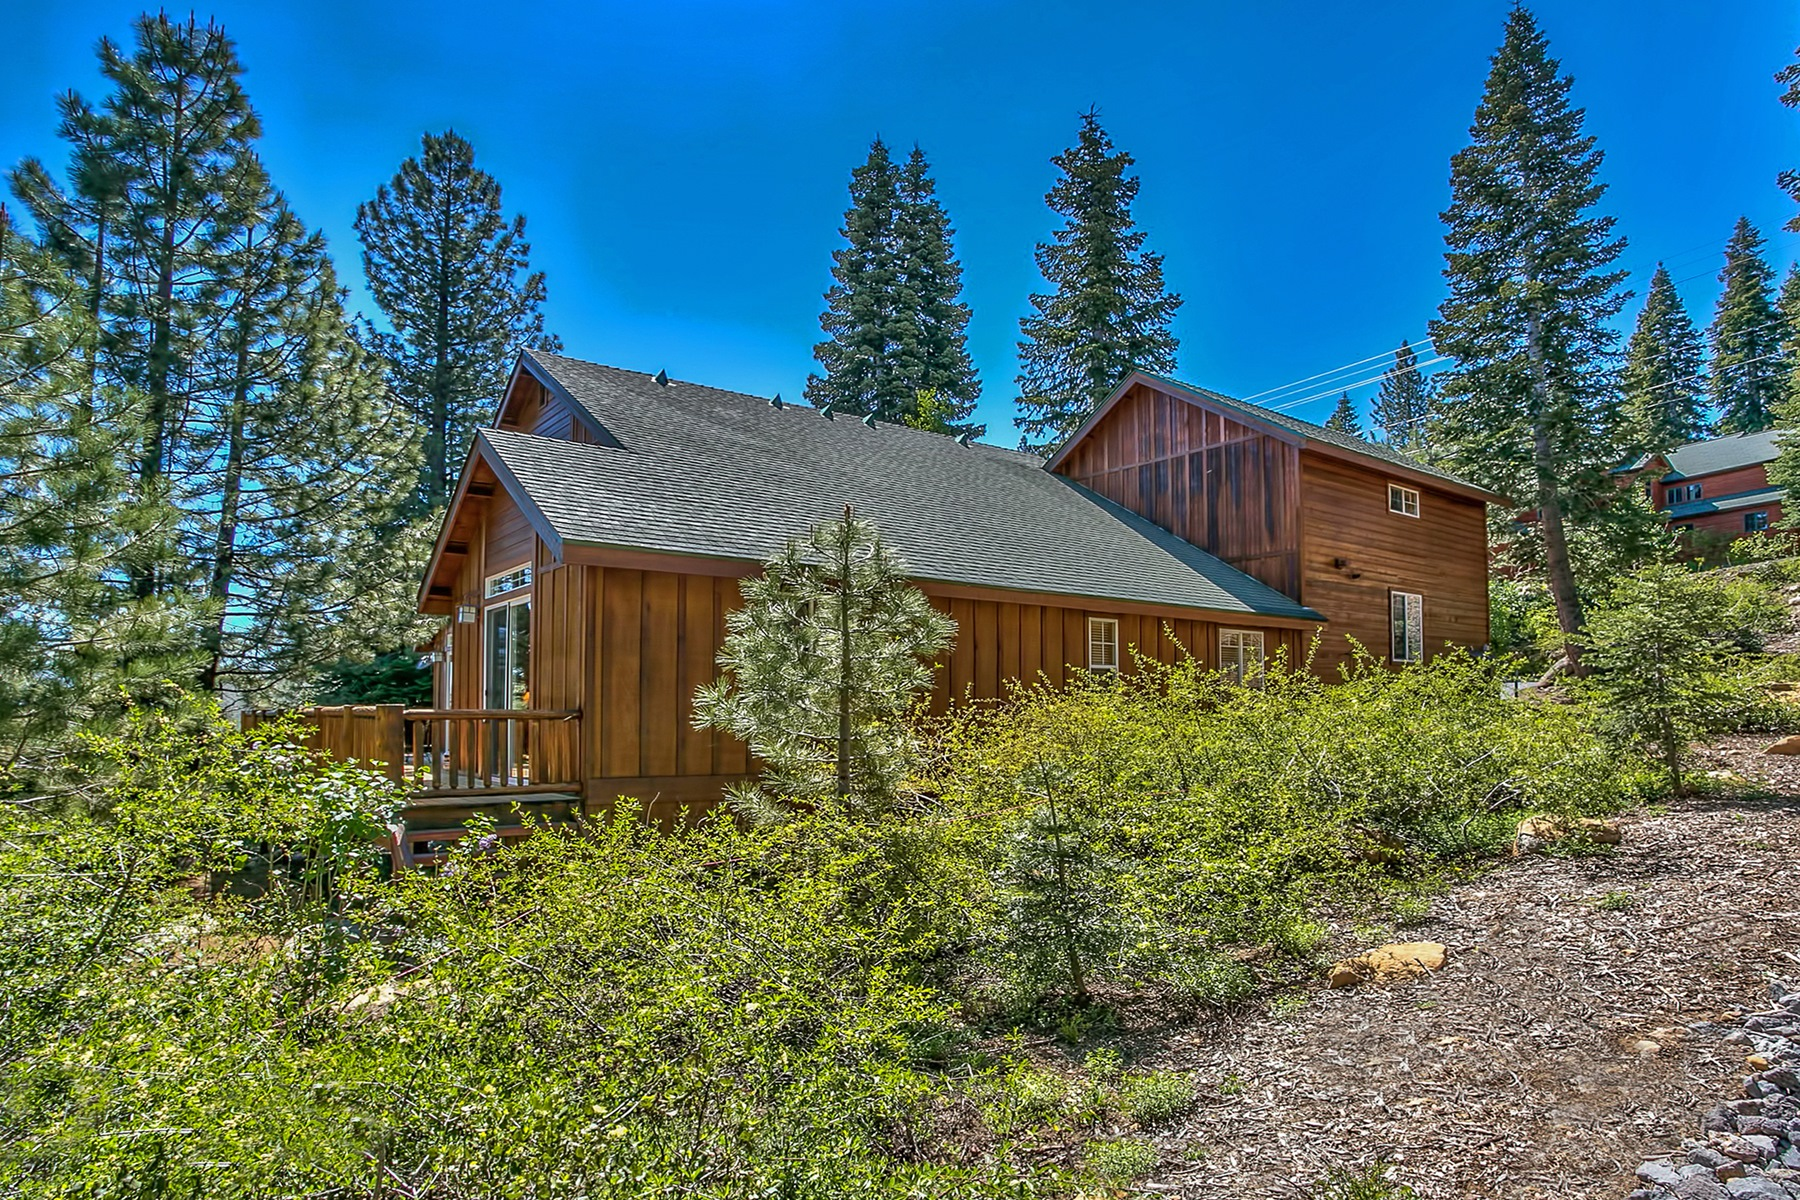 Single Family Home for Active at 10911 Skislope Way, Truckee, CA Truckee, California 96161 United States